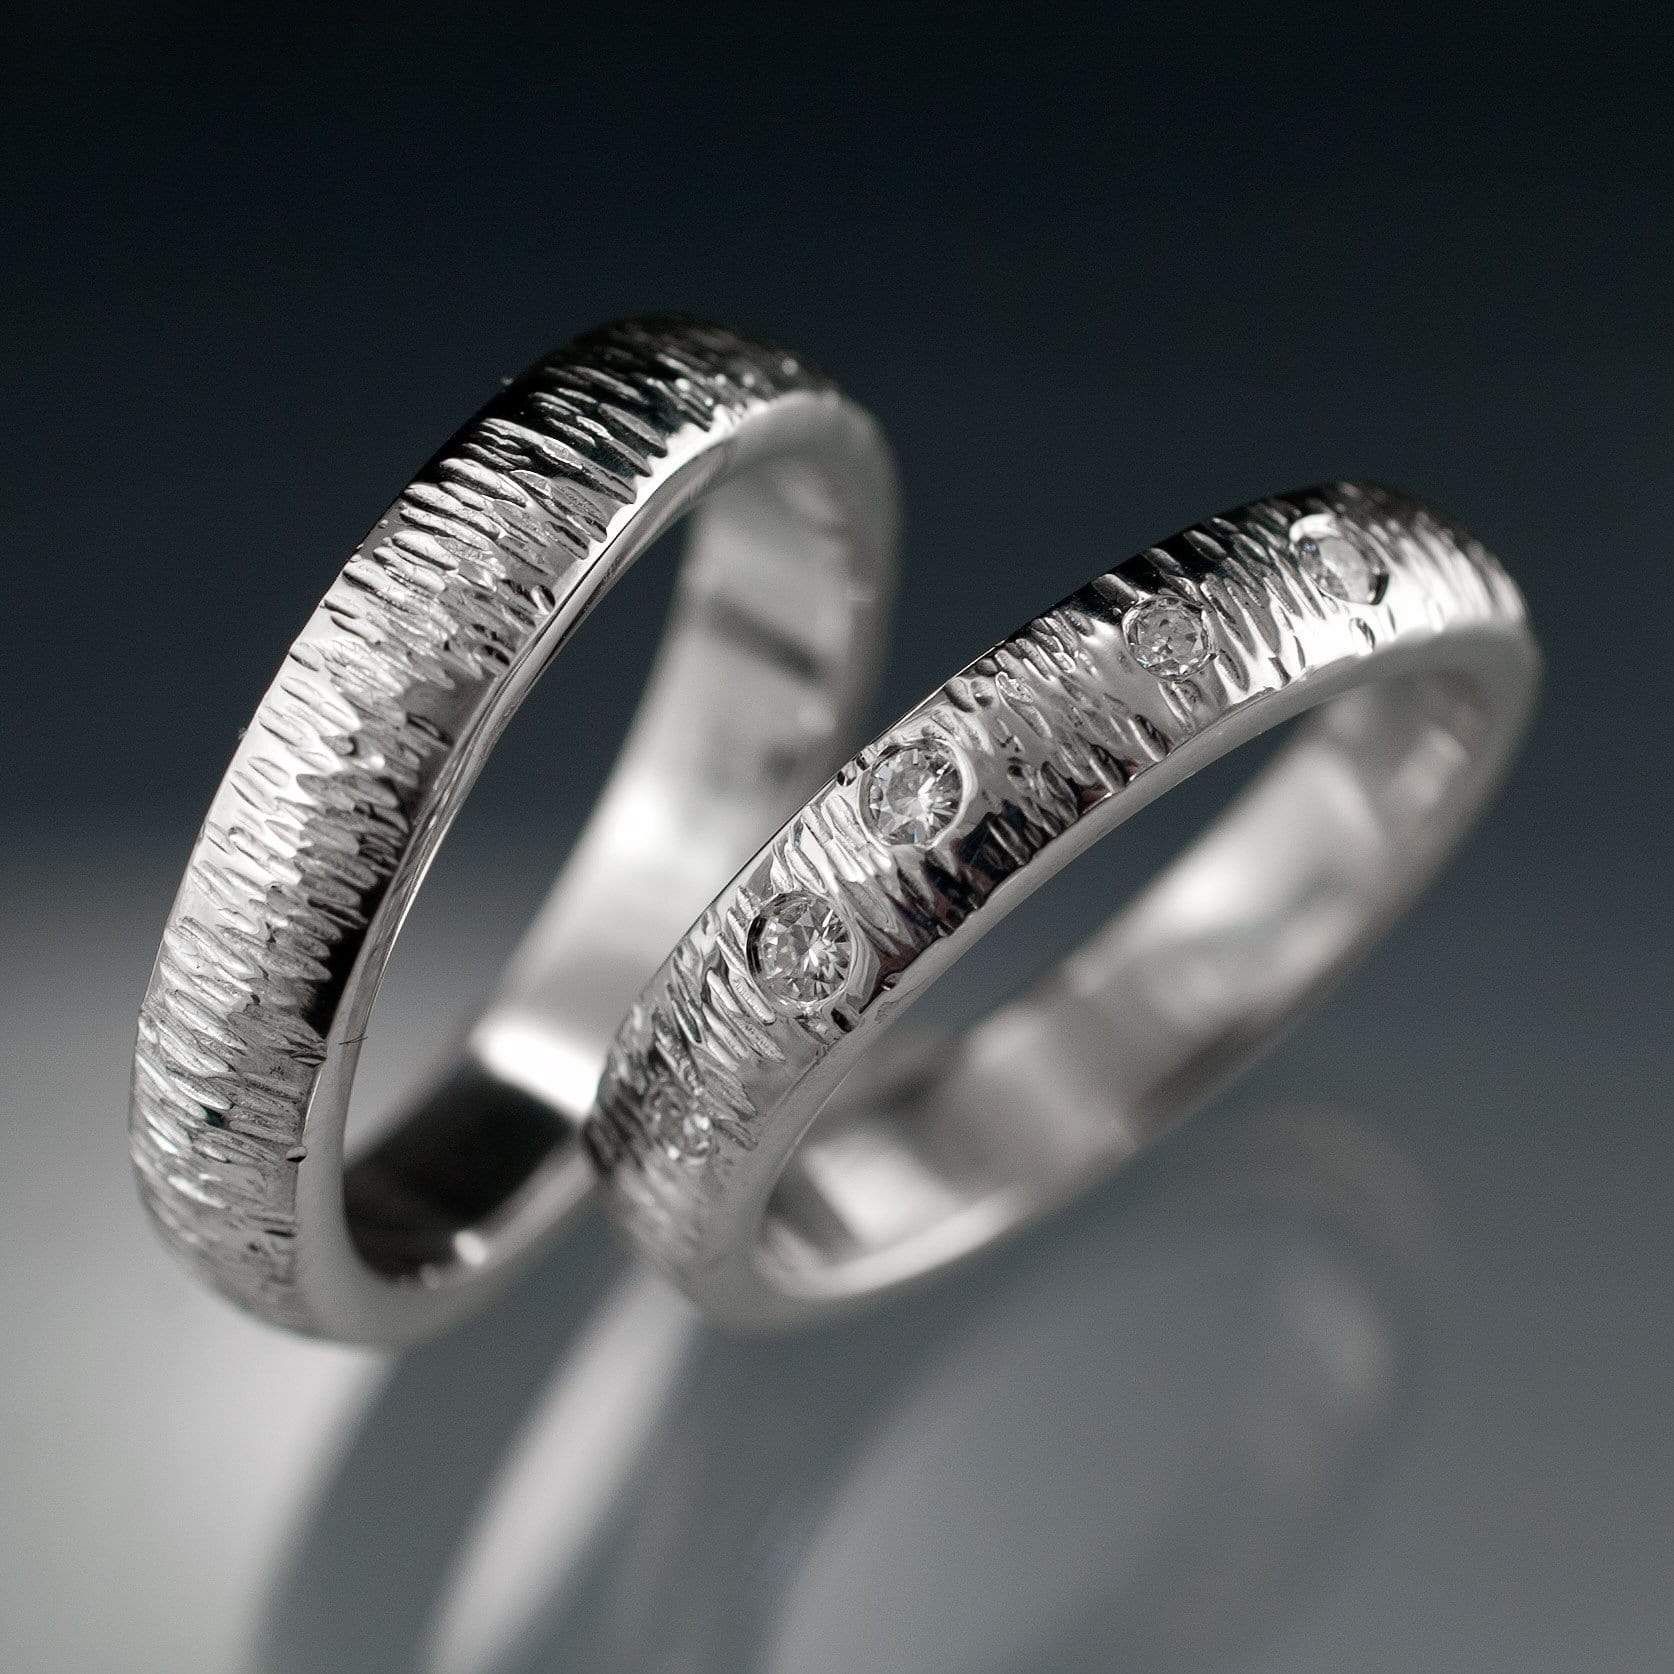 Textured Wedding Bands with Hammered Texture and Flush Set Moissanites